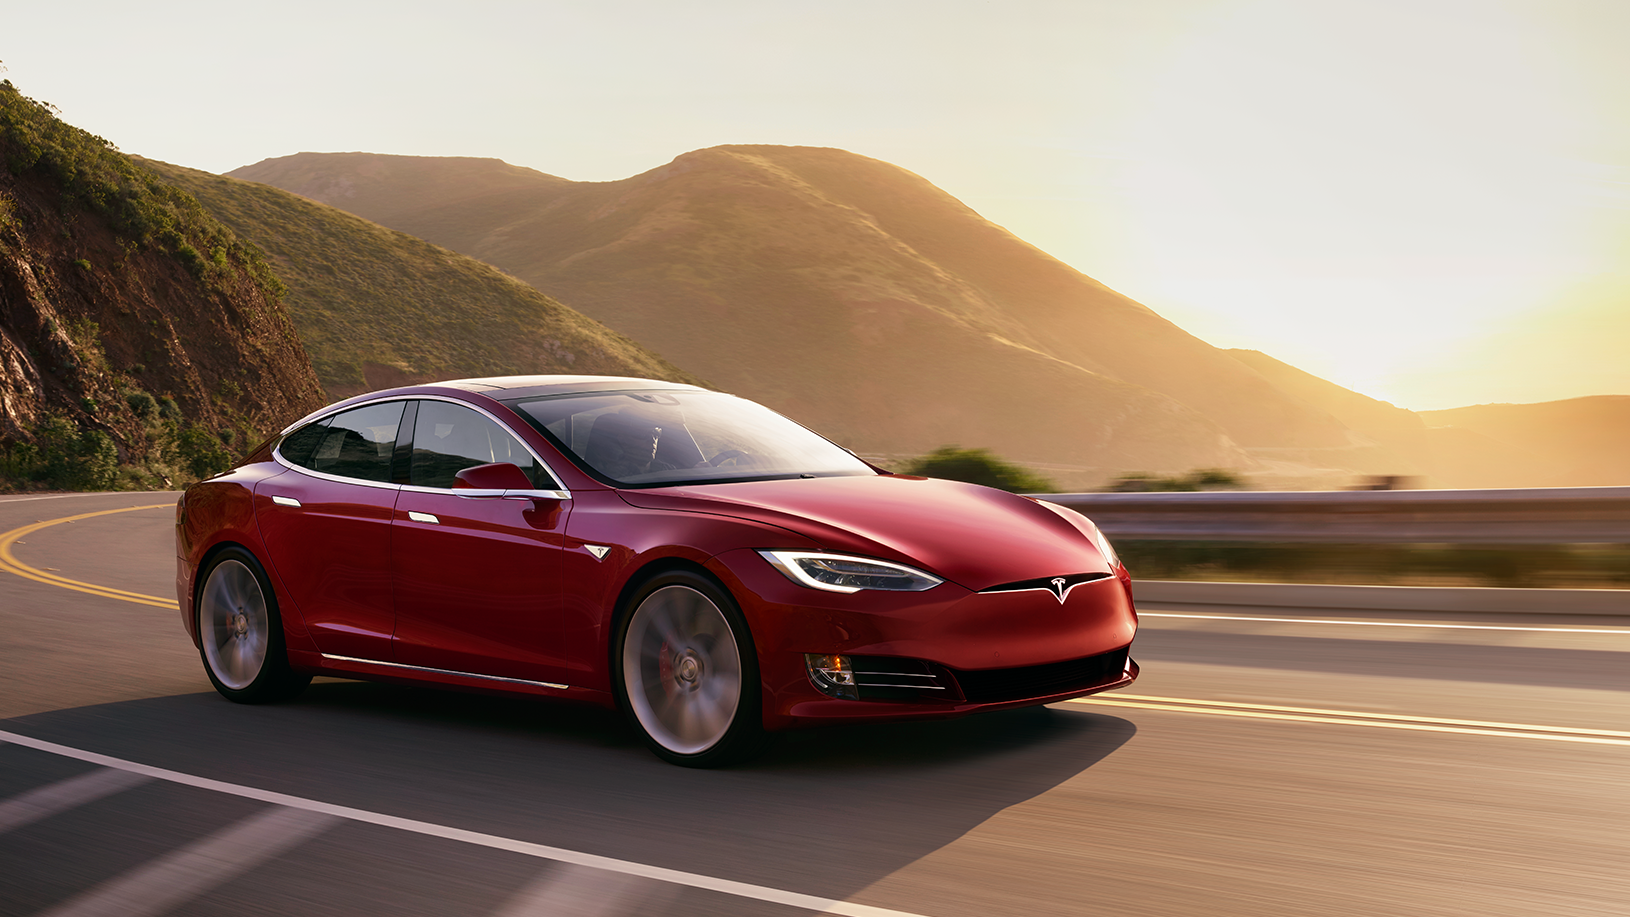 The best electric vehicles for road trips revealed